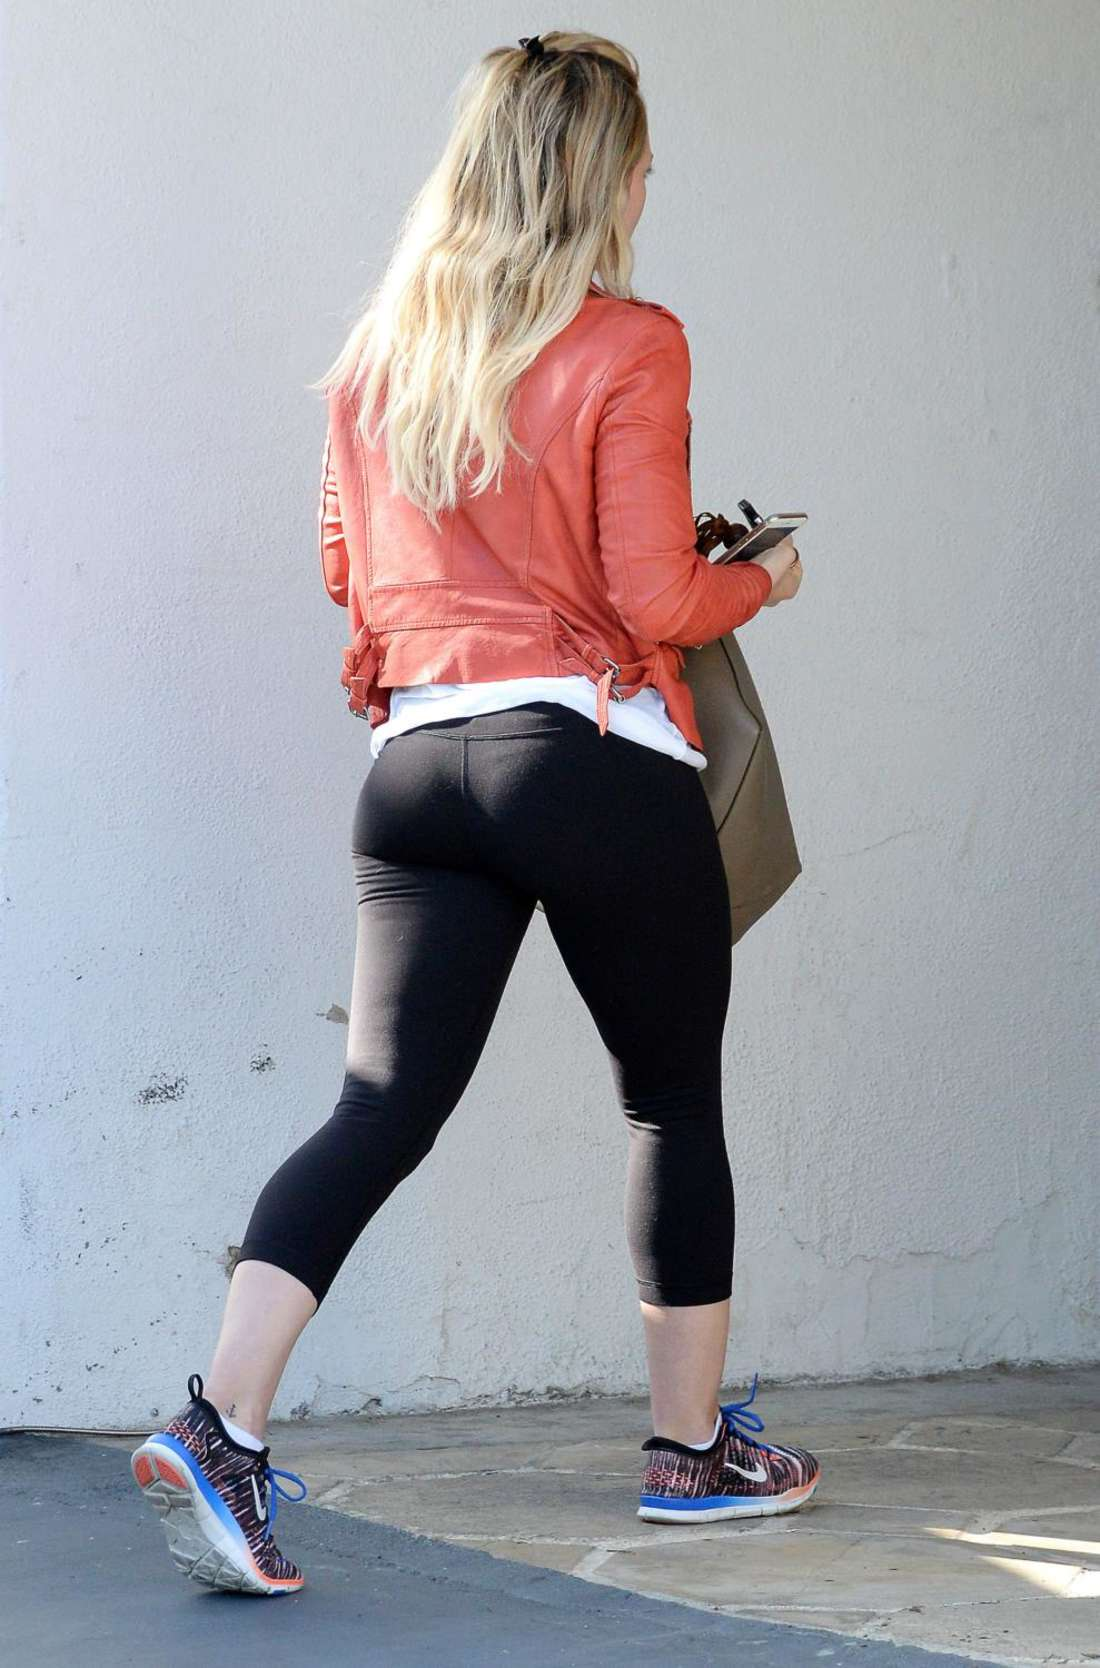 Hilary-Duff-Booty-in-tights-at-a-gym--04